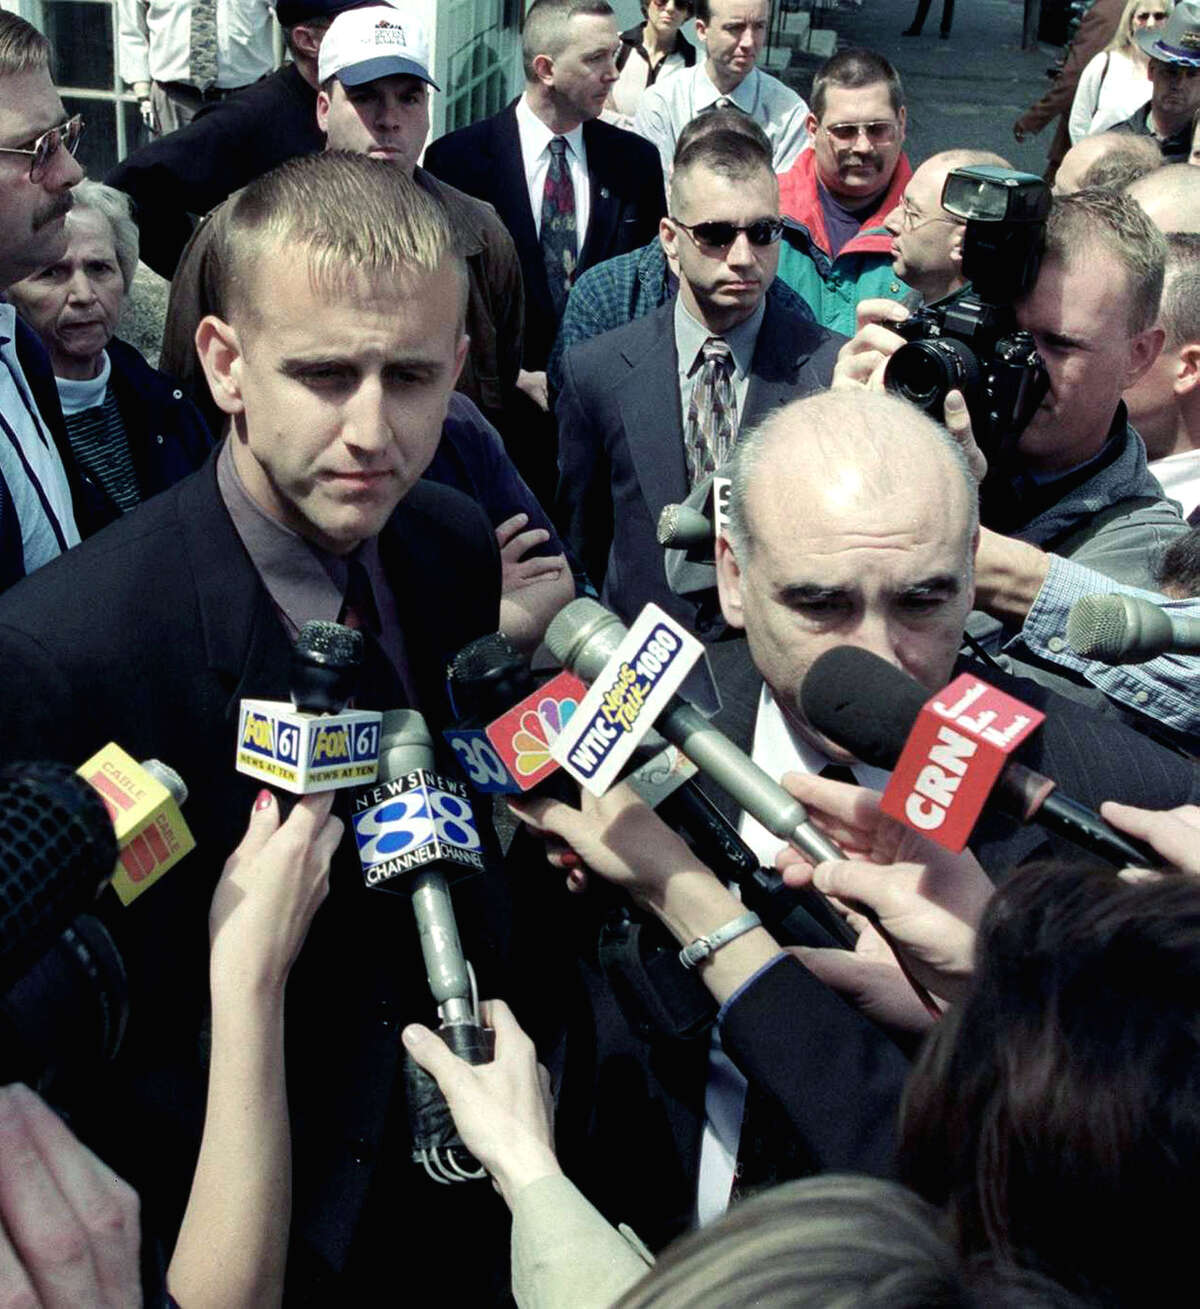 Then New Milford police officer Scott Smith, left, and his attorney, John Kelly, are grilled by the media outside the Litchfield courthouse on May 11, 2000 after his sentencing in the Dec. 29, 1998 shooting of Franklyn Reid. Among the trhong are off-duty New Milford police officers who went to Litchfield to support Officer Smith. Spectrum file photo